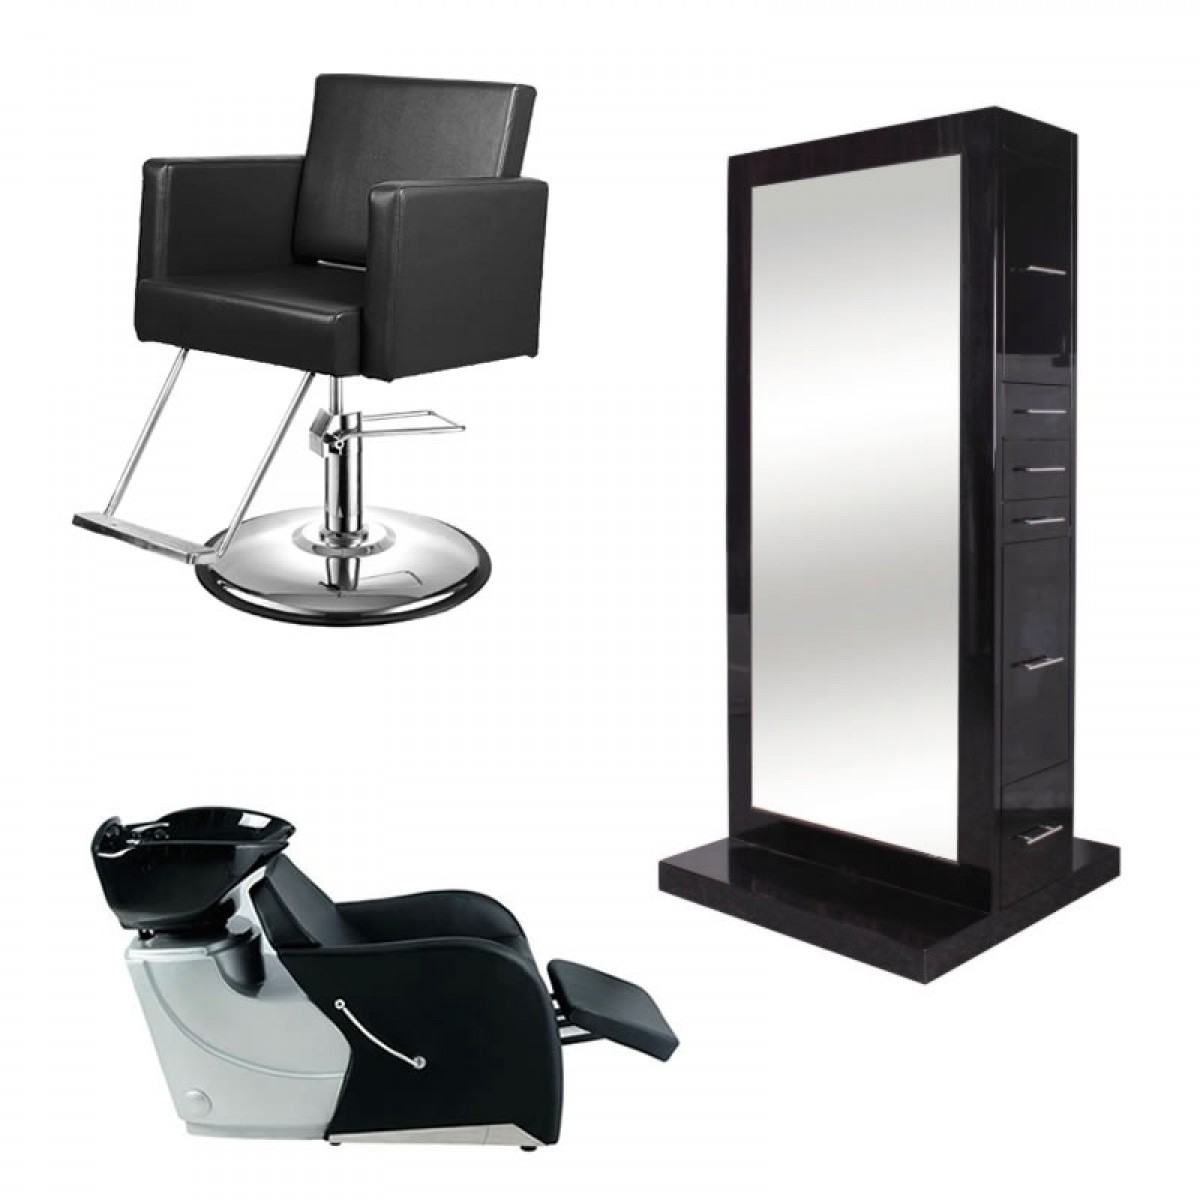 wholesale barber chairs kneeling posture chair ikea salon equipment package furniture